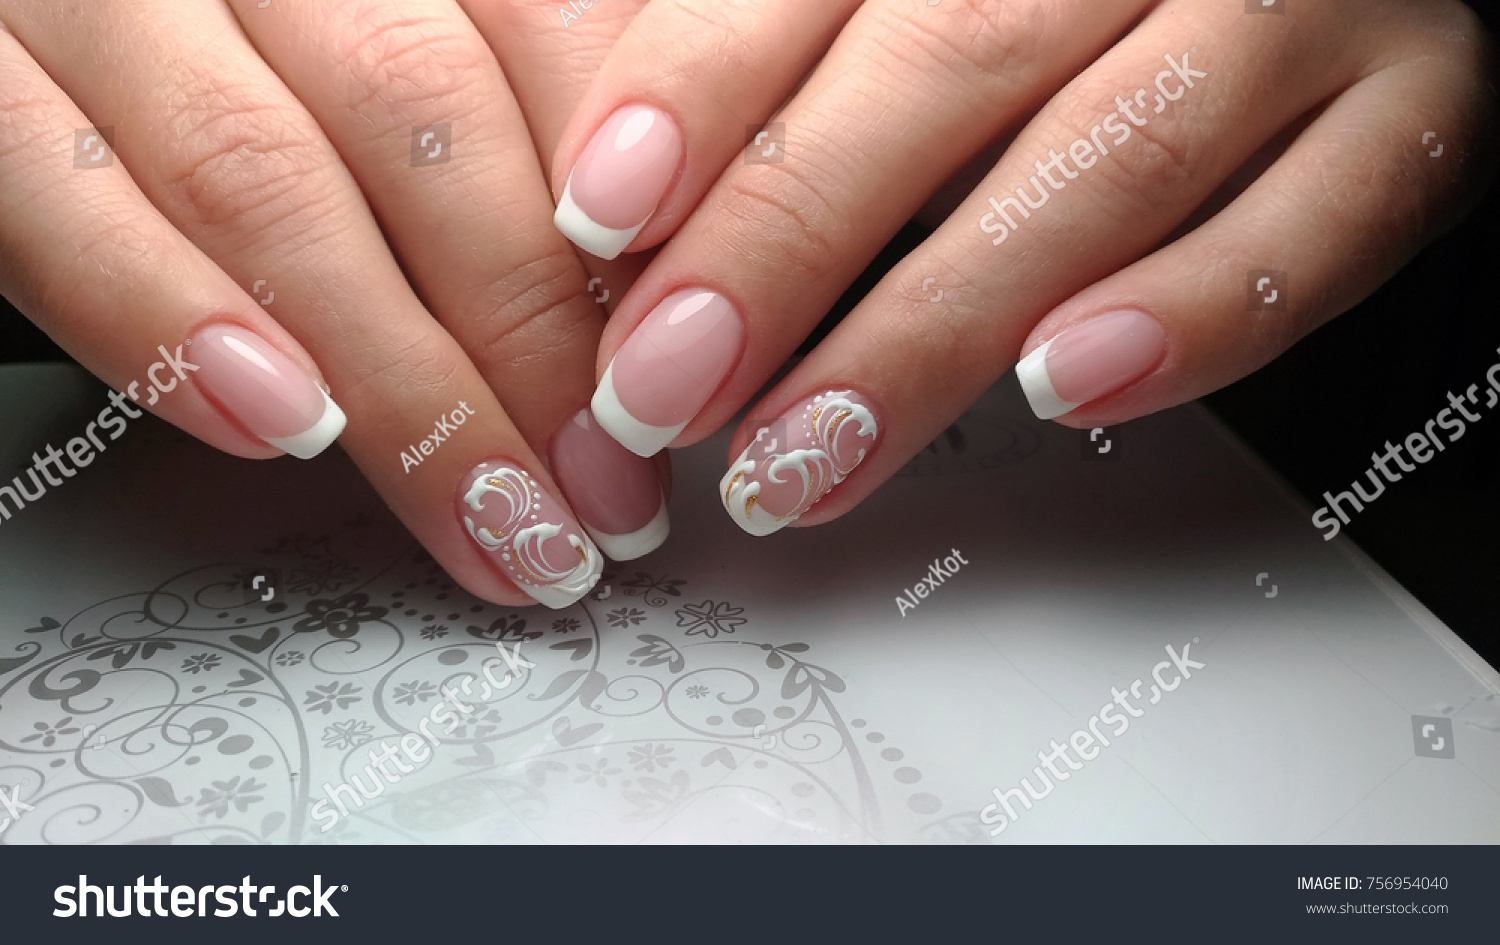 French Nail Design Stock Photo (Royalty Free) 756954040 - Shutterstock